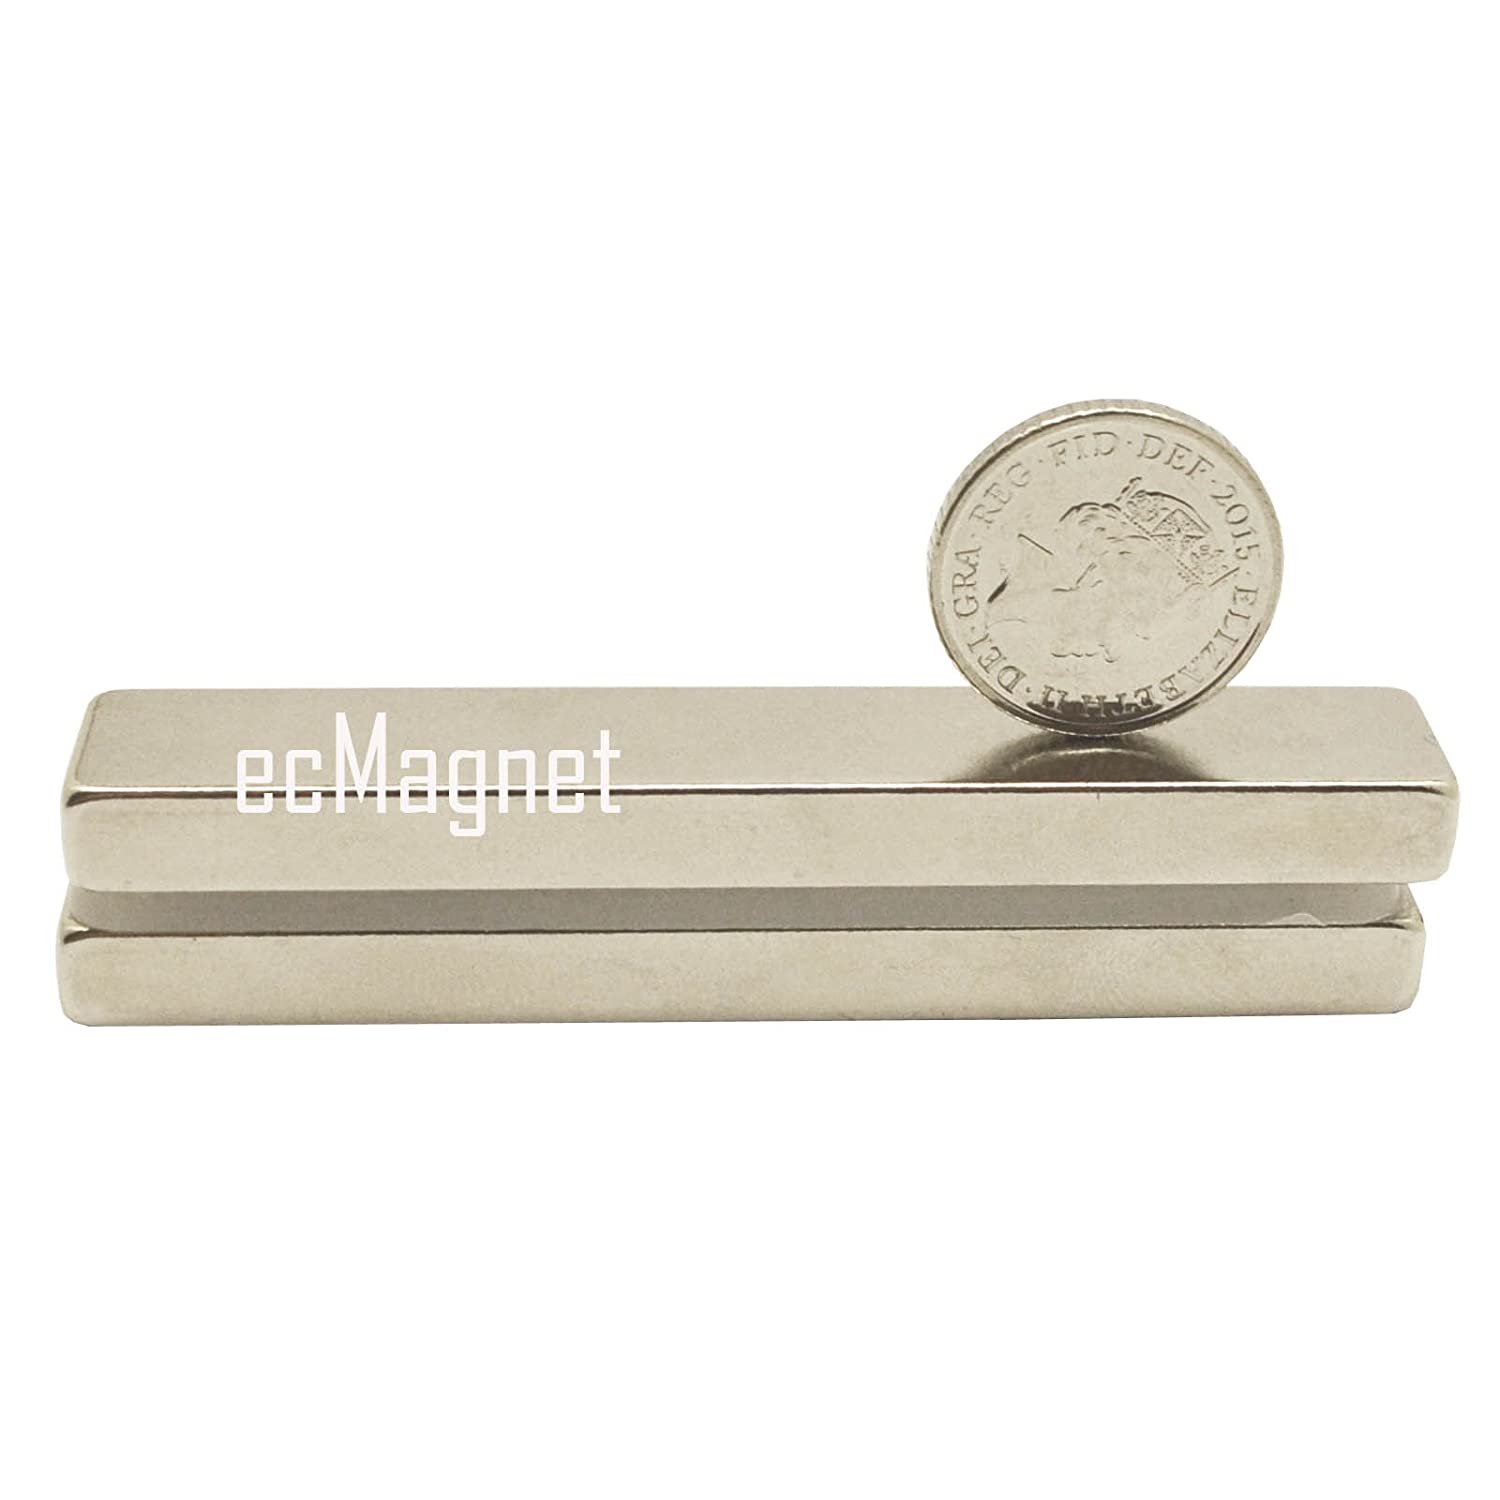 efeel Super Strong Extra Long DIY Craft Indstrial Use 64mm x 12mm x 5mm Rare Earth Neodymium Block Bar Magnets Grade N35 (1pc)